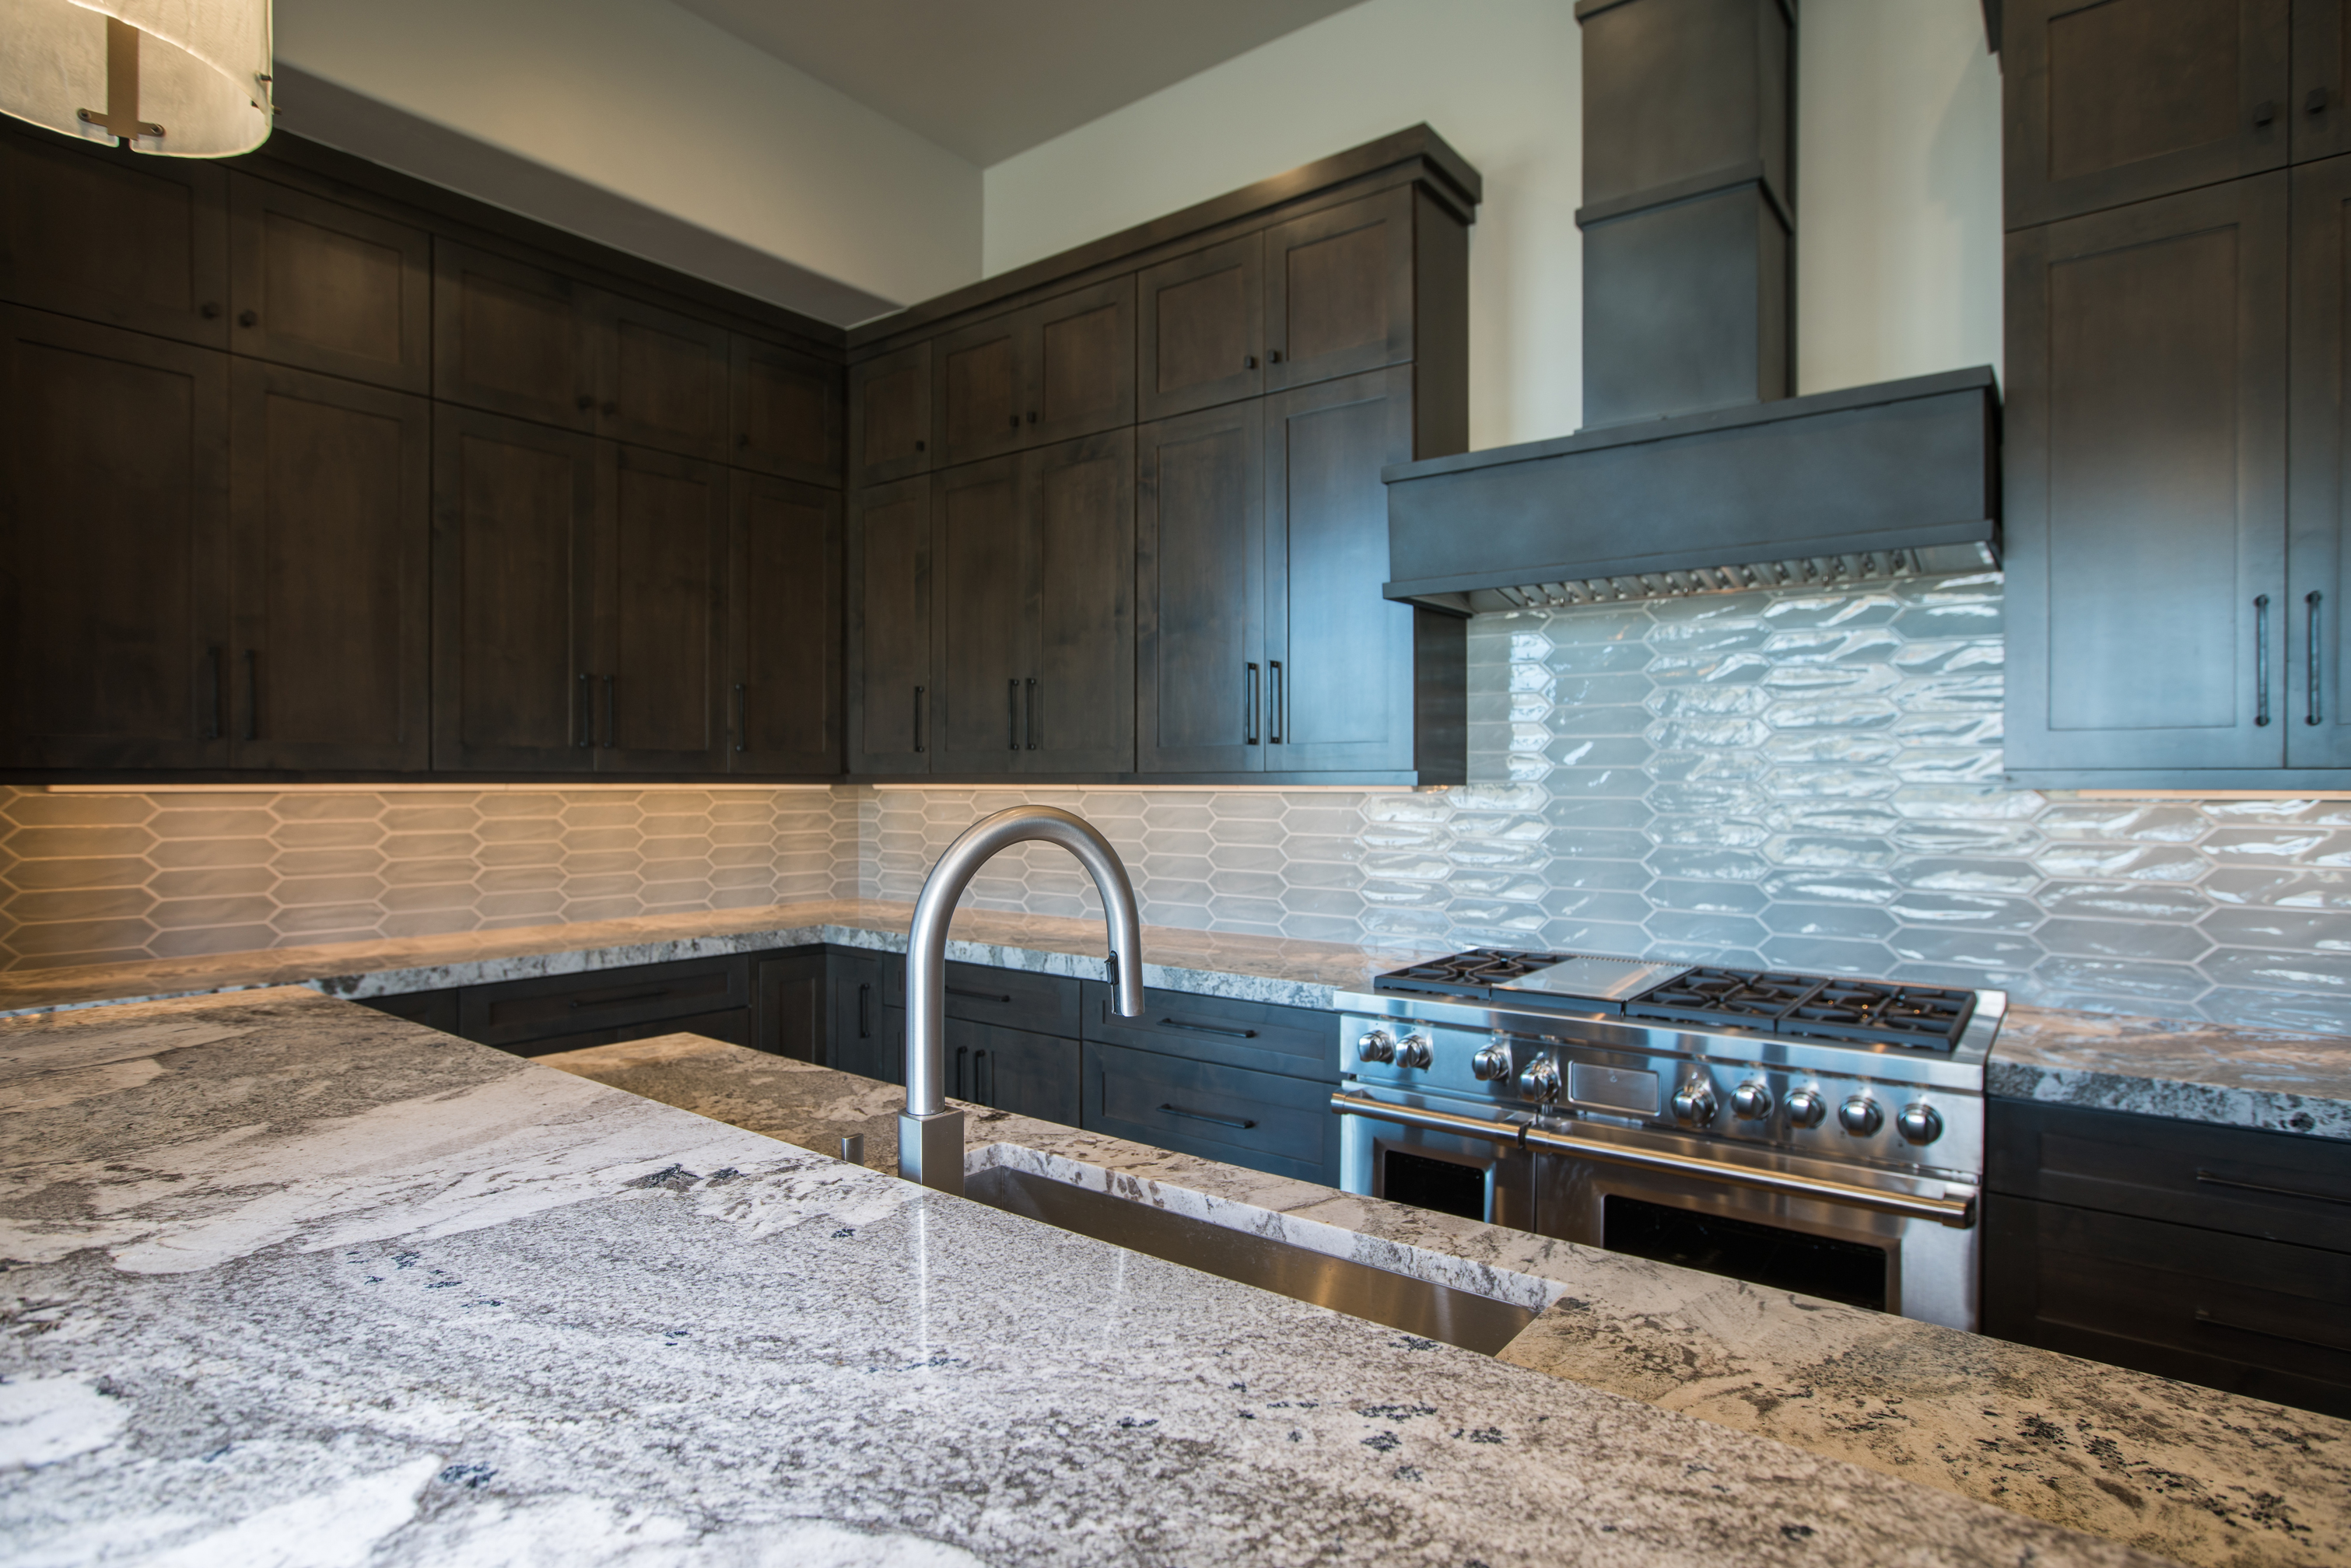 Utah Tile and Countertops - Paul Dowland Tile, Inc